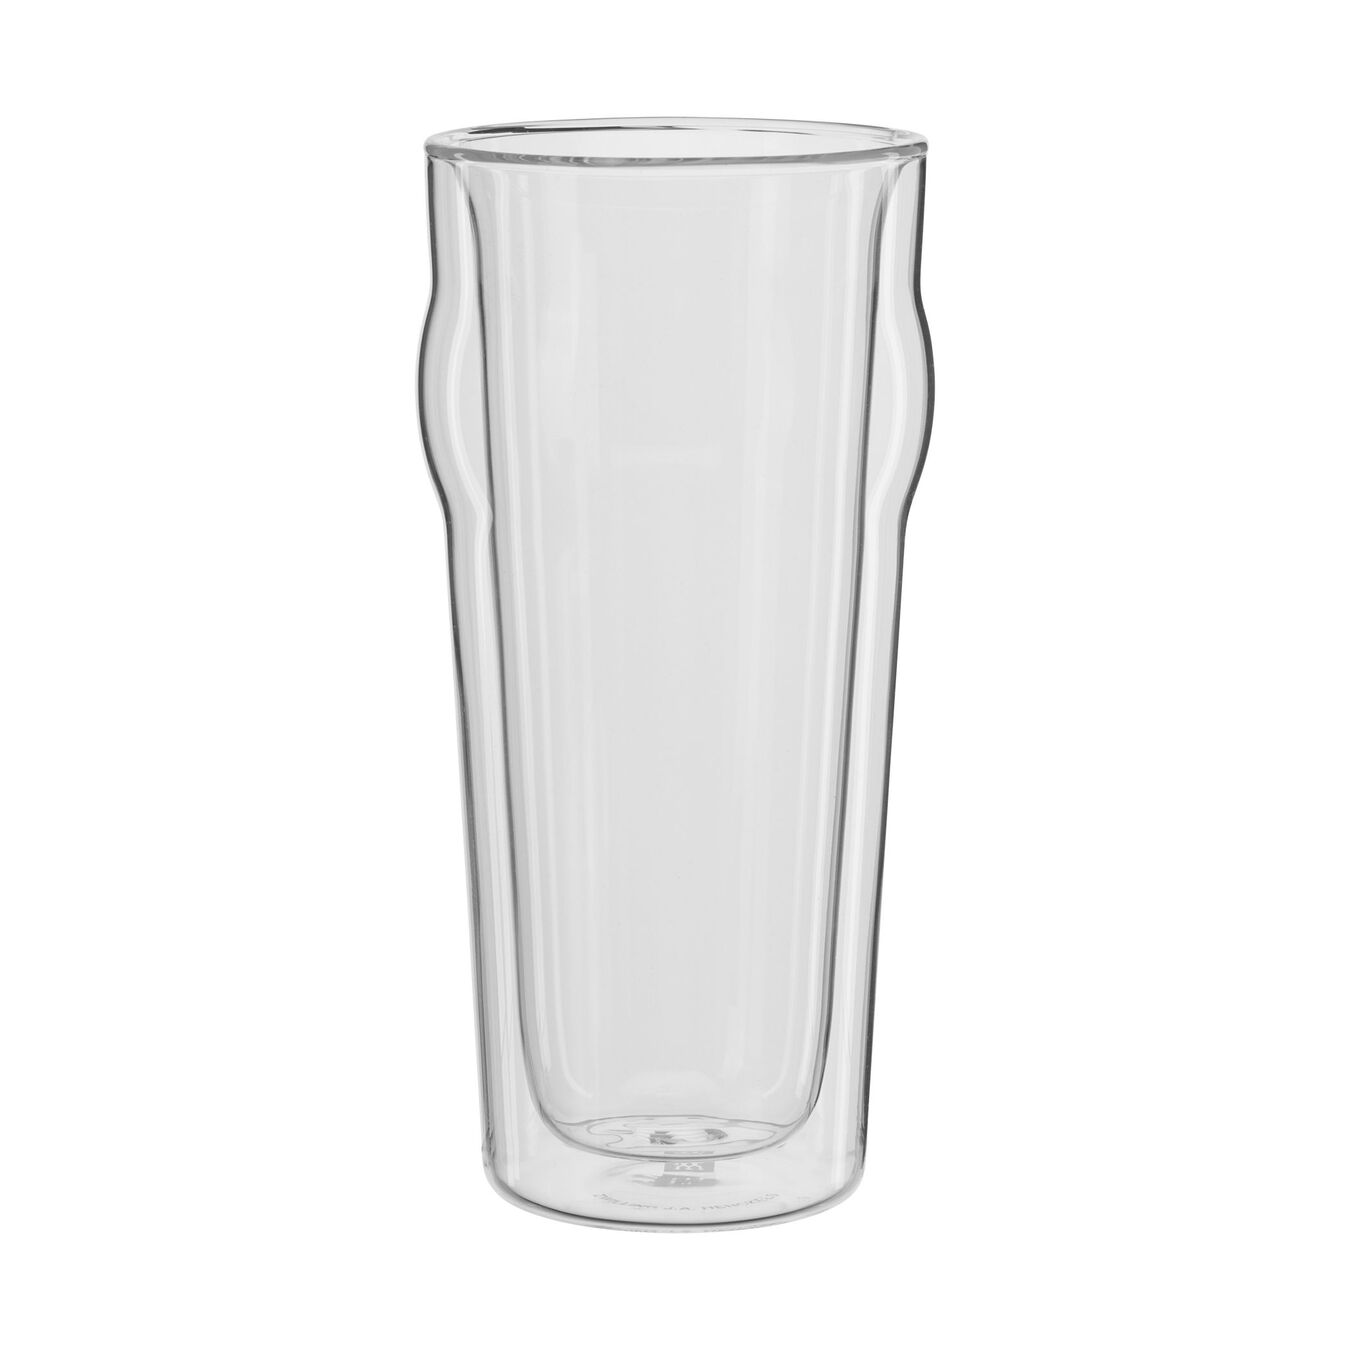 Double-Wall Pint & Pilsner Glass Set,,large 3